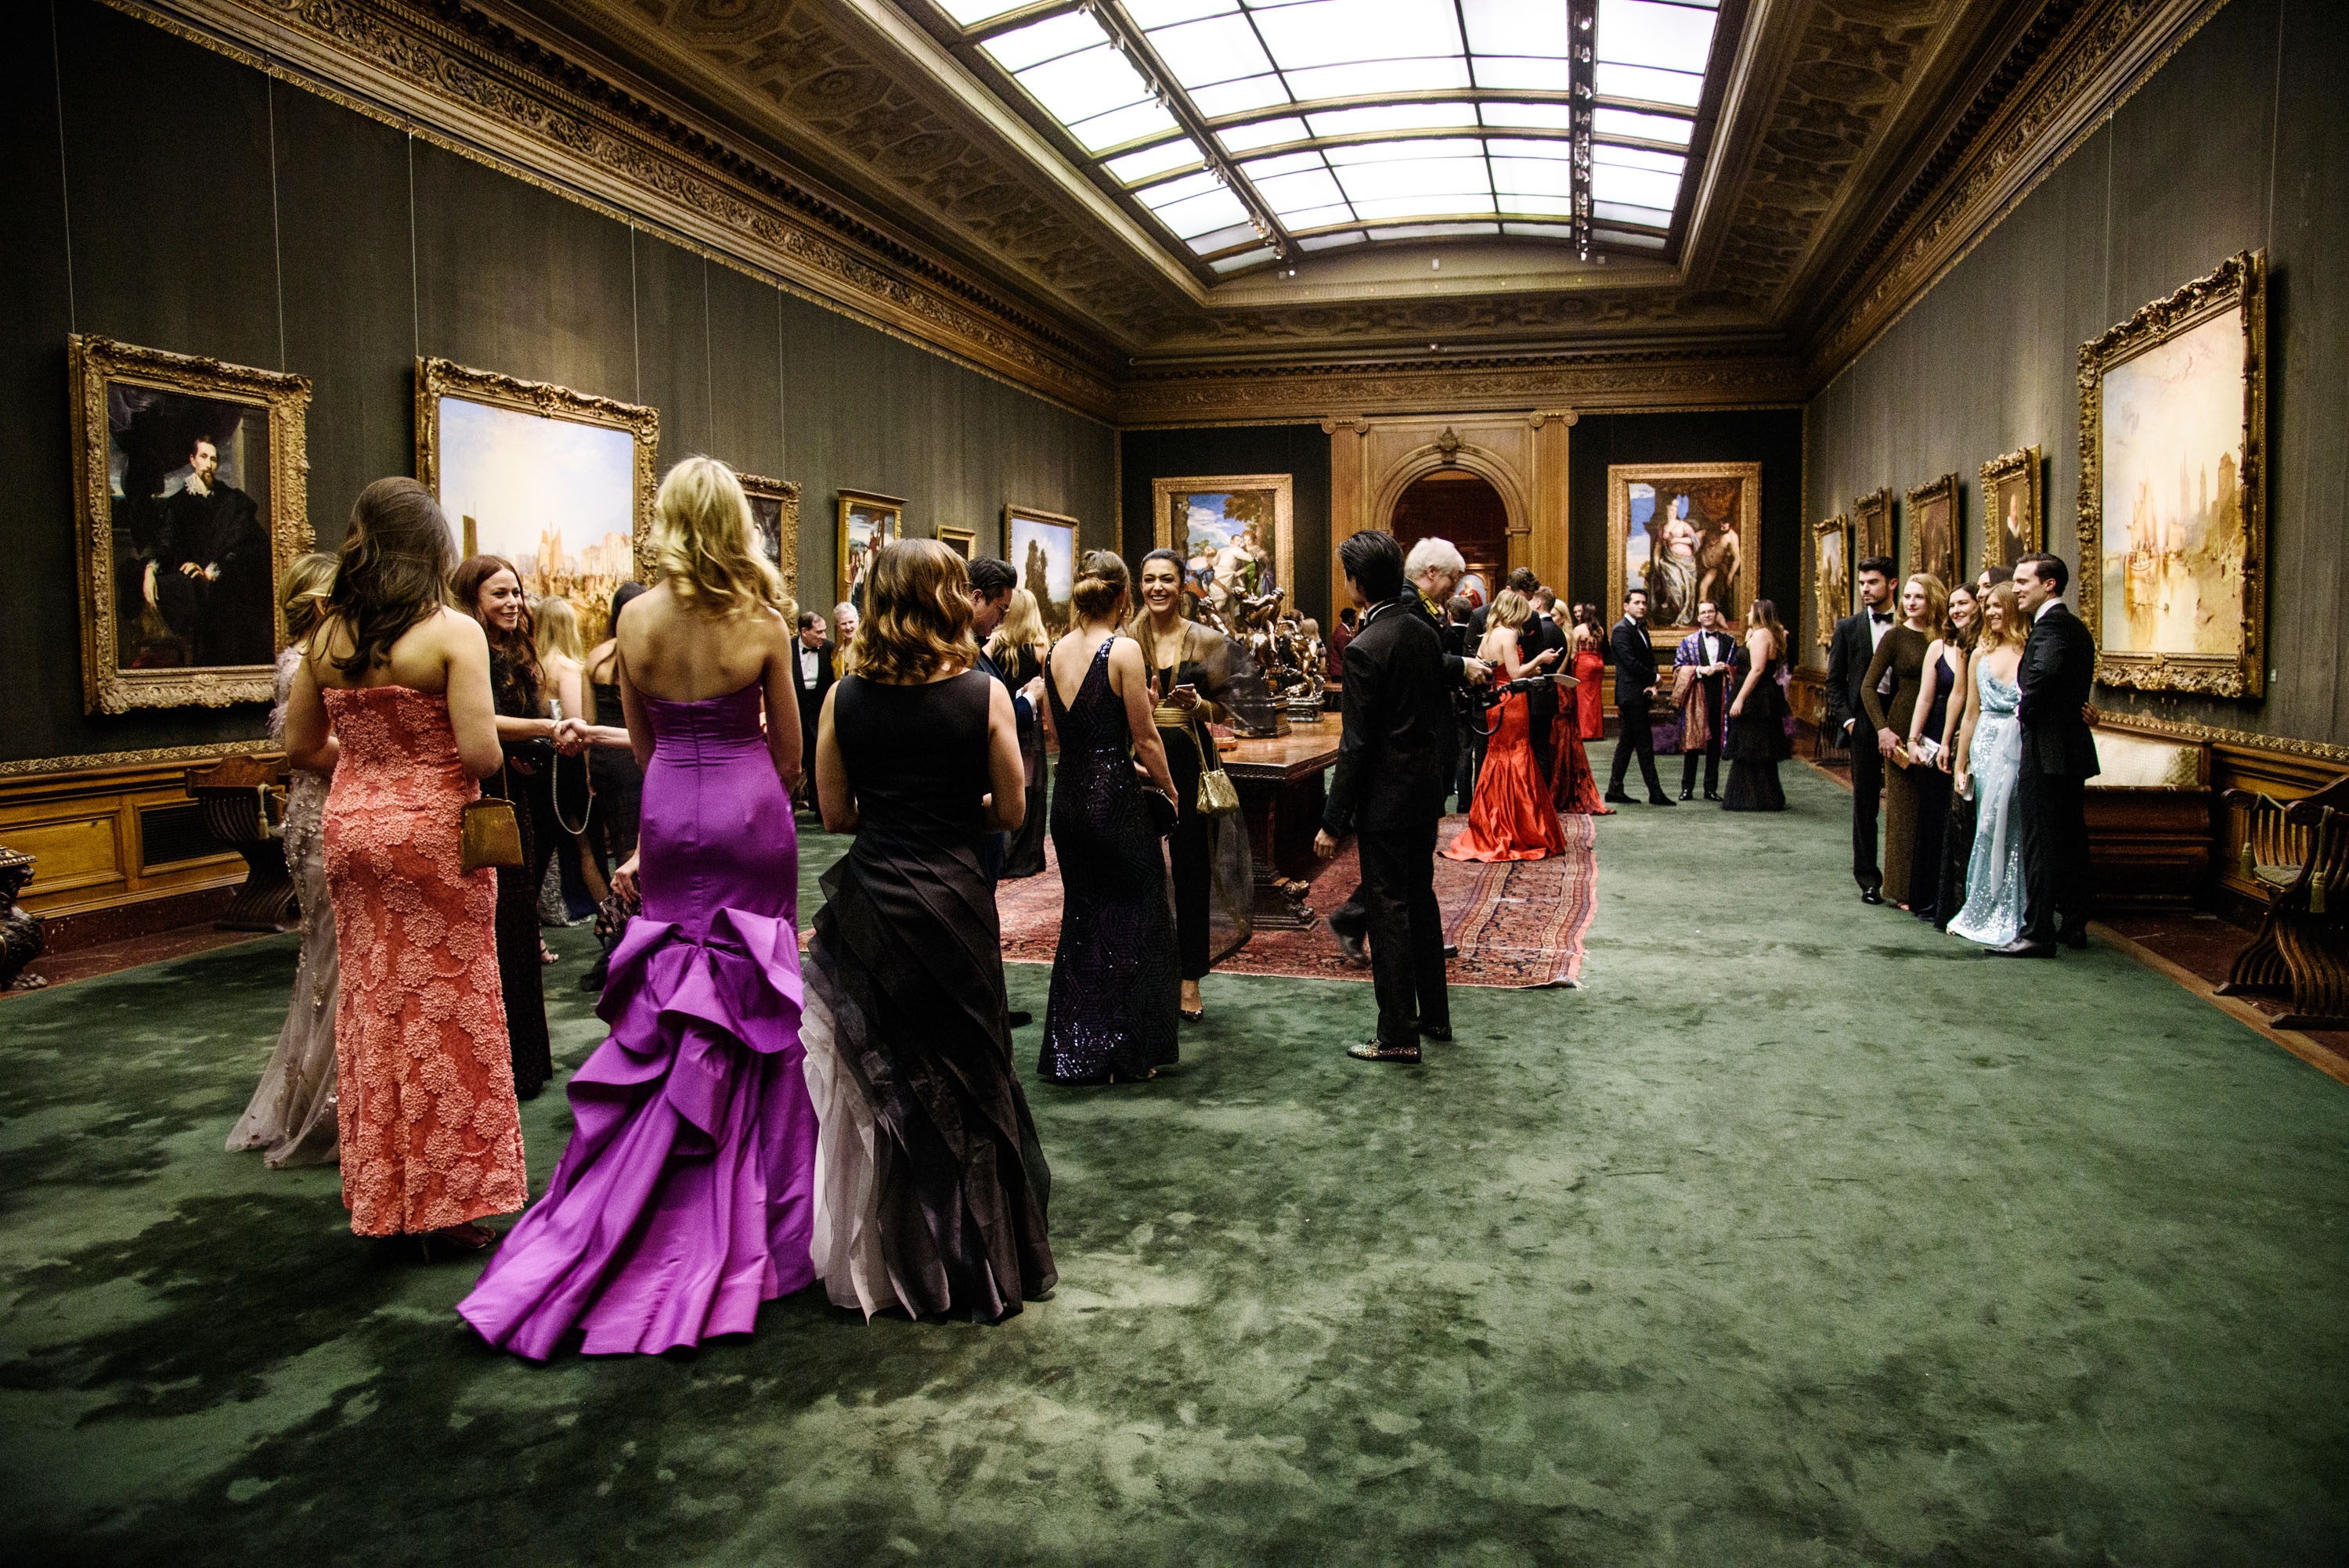 The scene at the Frick.